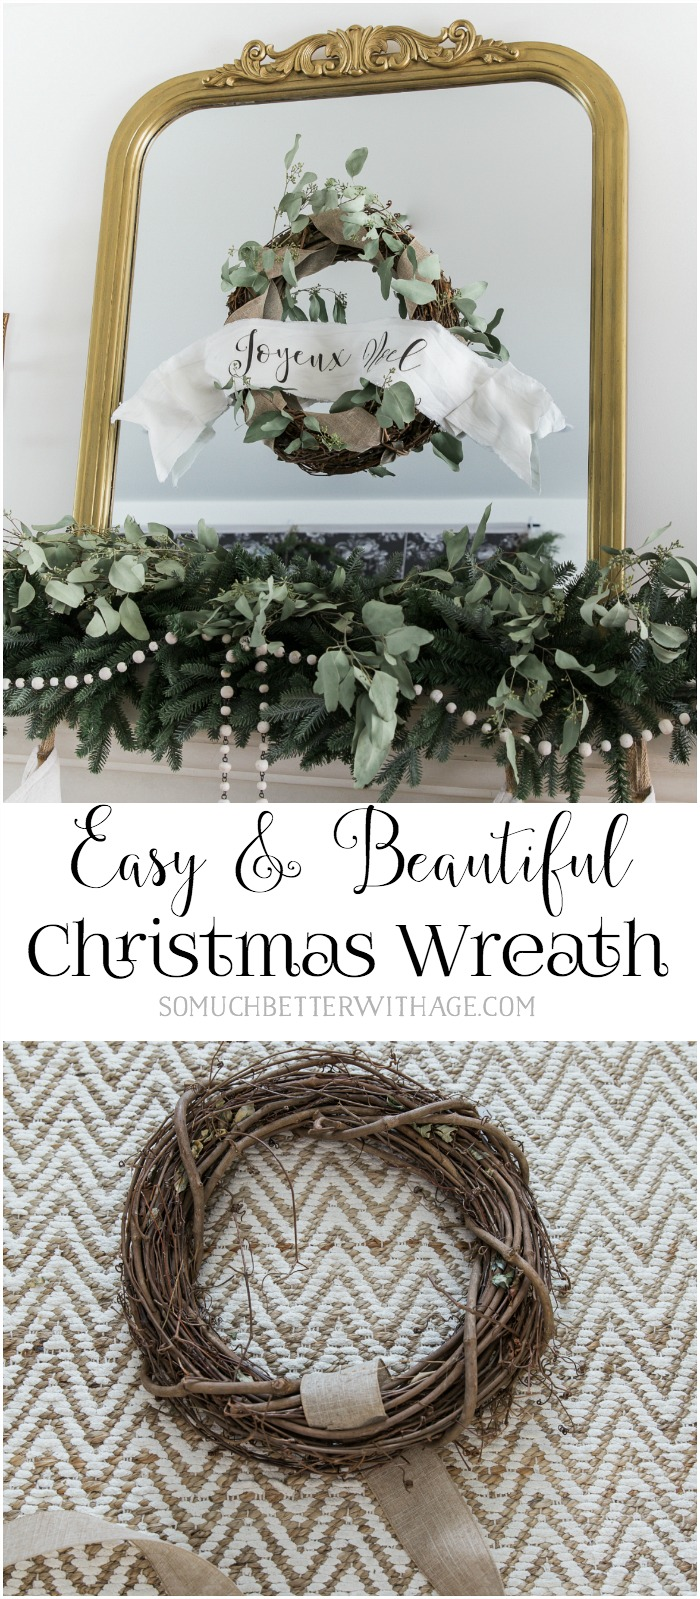 Easy & Beautiful Grapevine Wreath